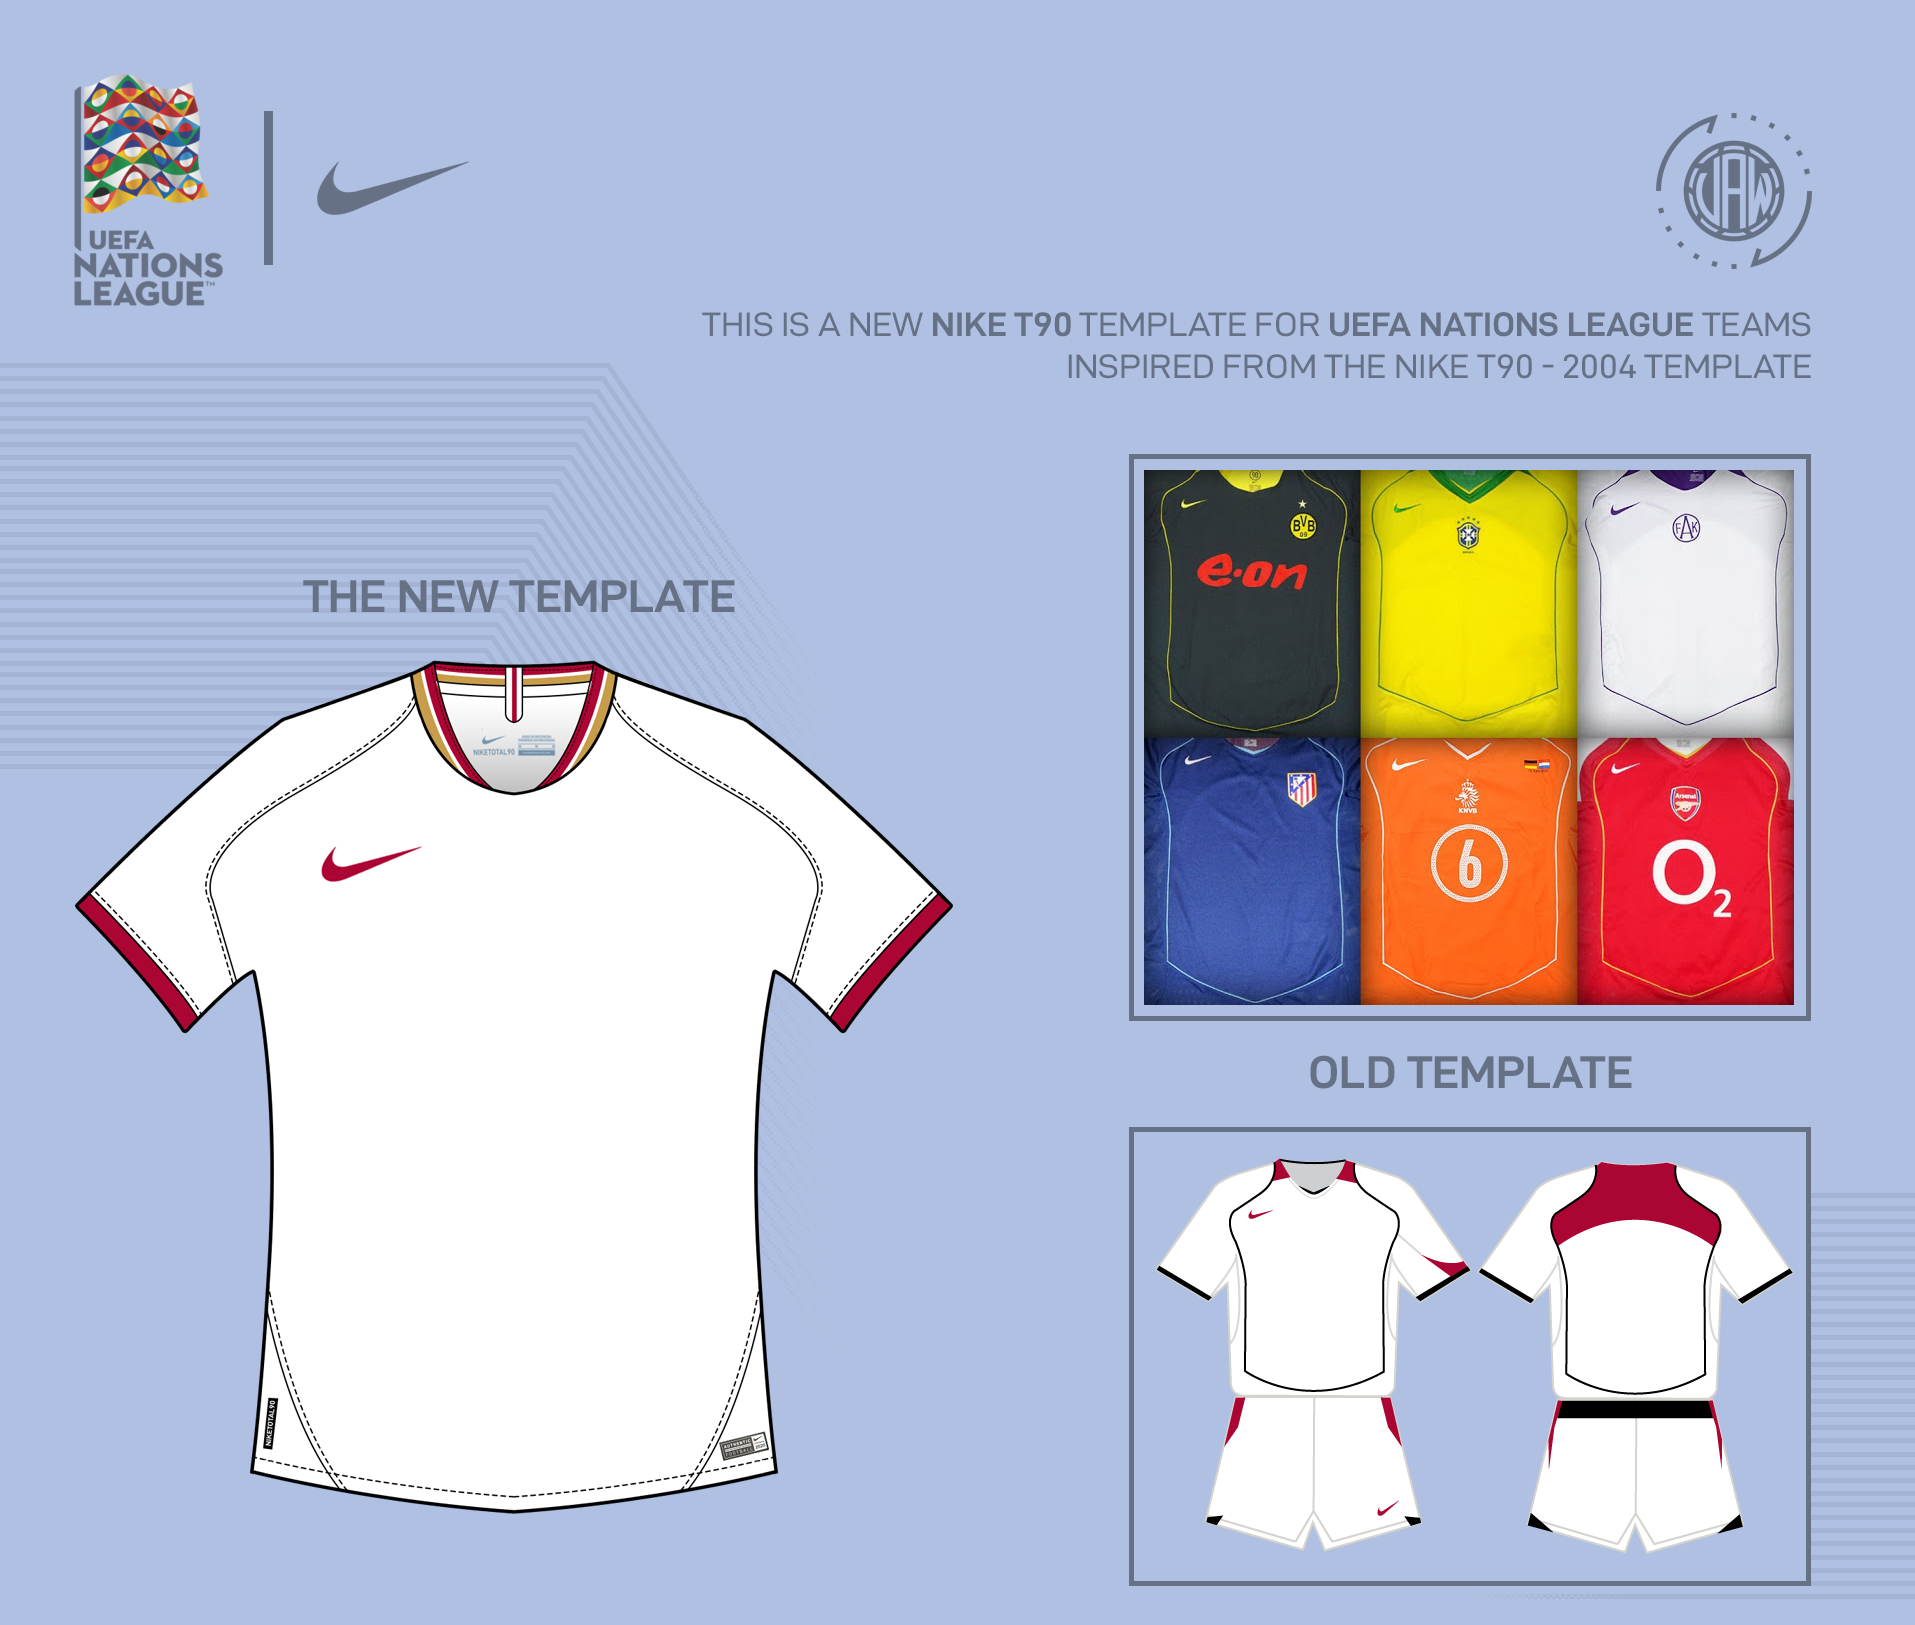 Nike 2018 | New T90 Template X Uefa Nations League on Behance